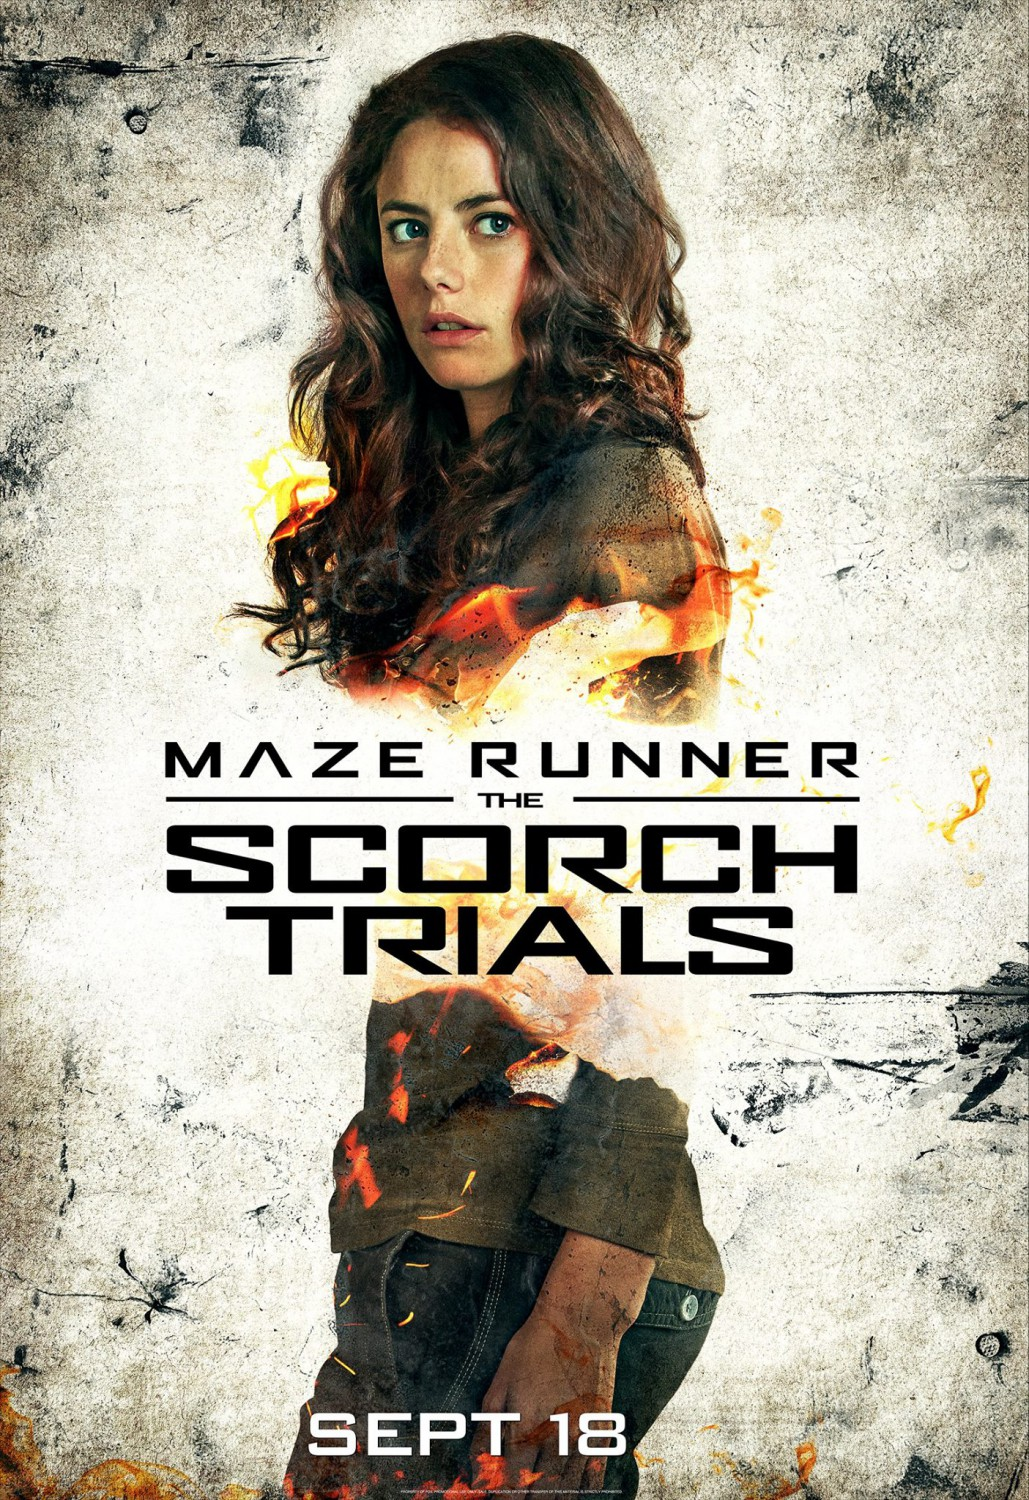 6 New MAZE RUNNER: THE SCORCH TRIALS Character Posters ...